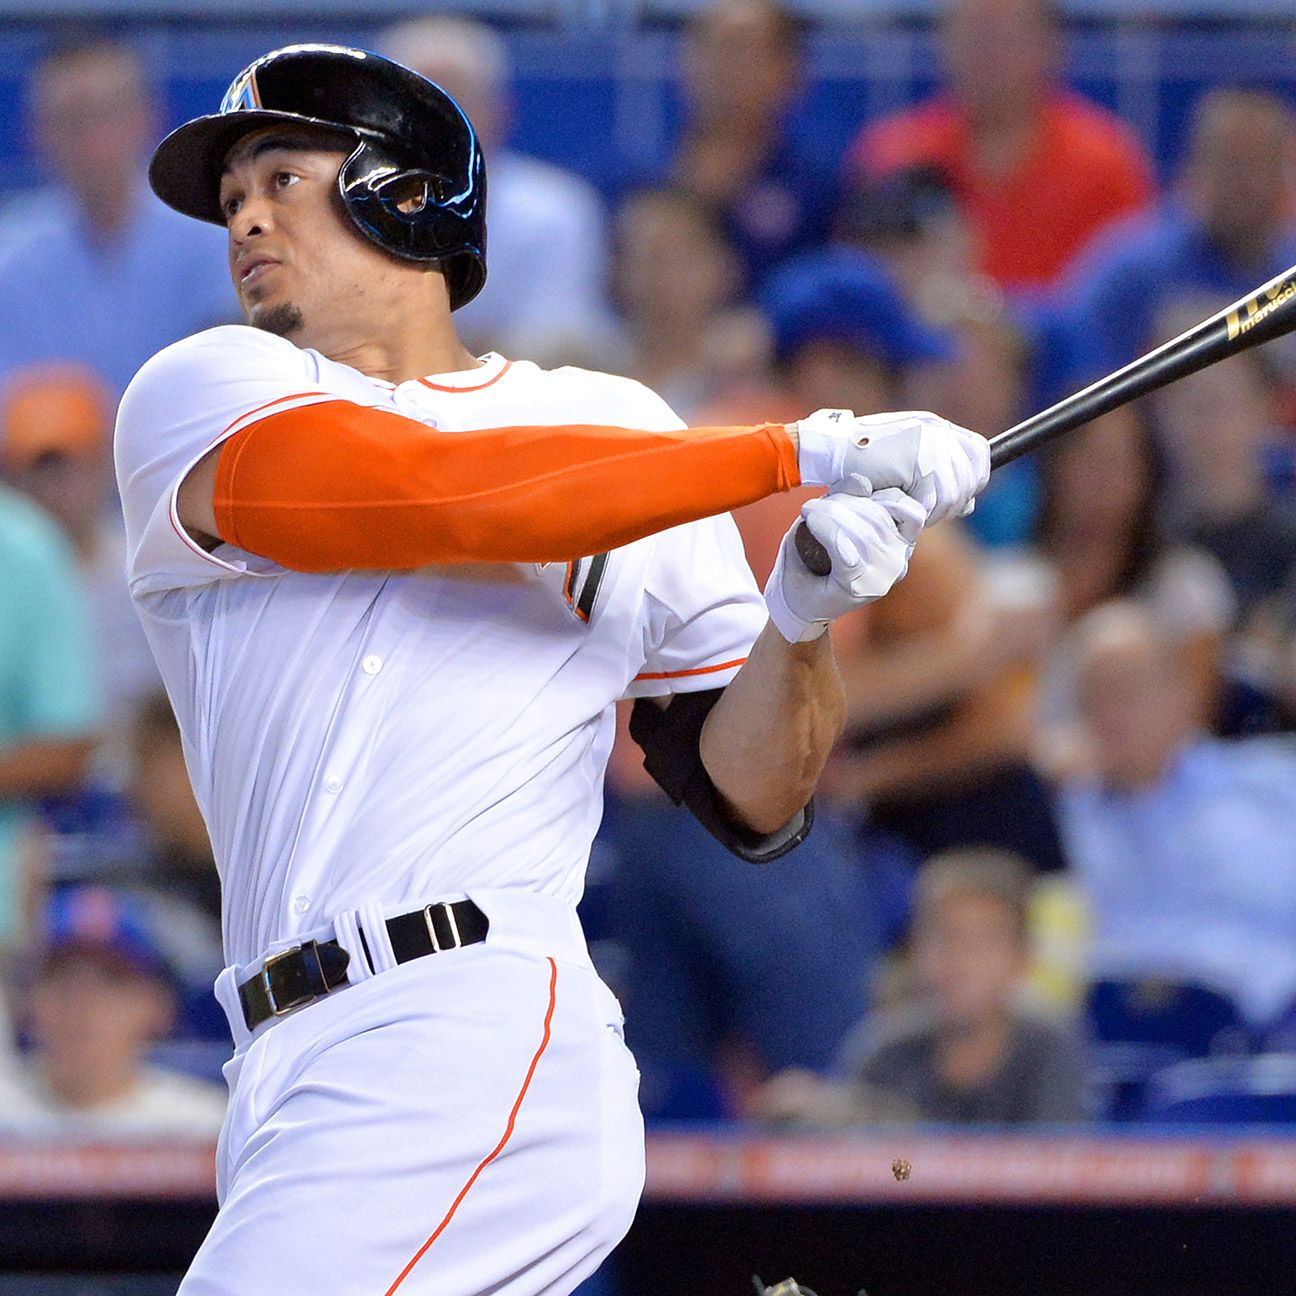 Giancarlo Stanton: Why Giancarlo Stanton Is Worth $300-plus Million -- MLB